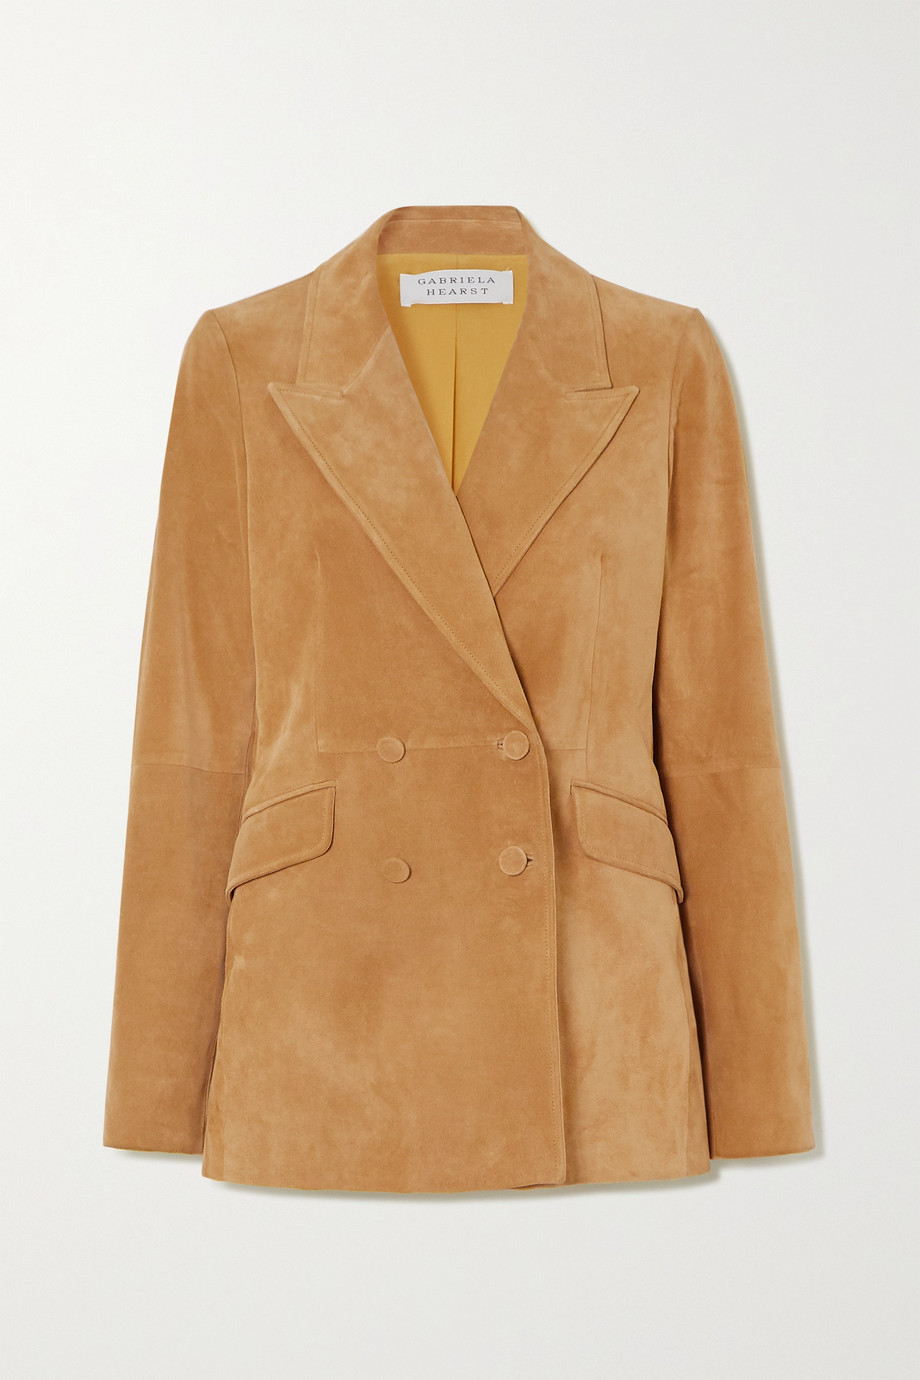 Gabriela Hearst Angela double-breasted suede blazer